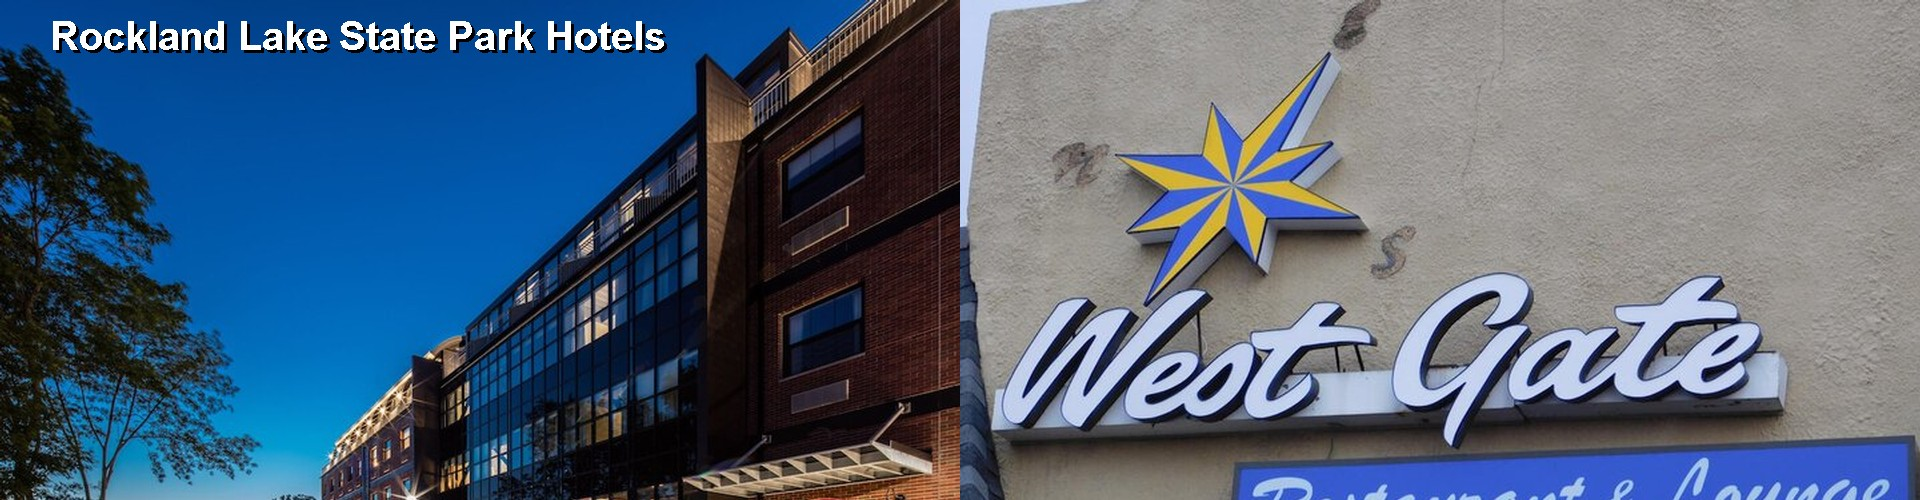 5 Best Hotels near Rockland Lake State Park